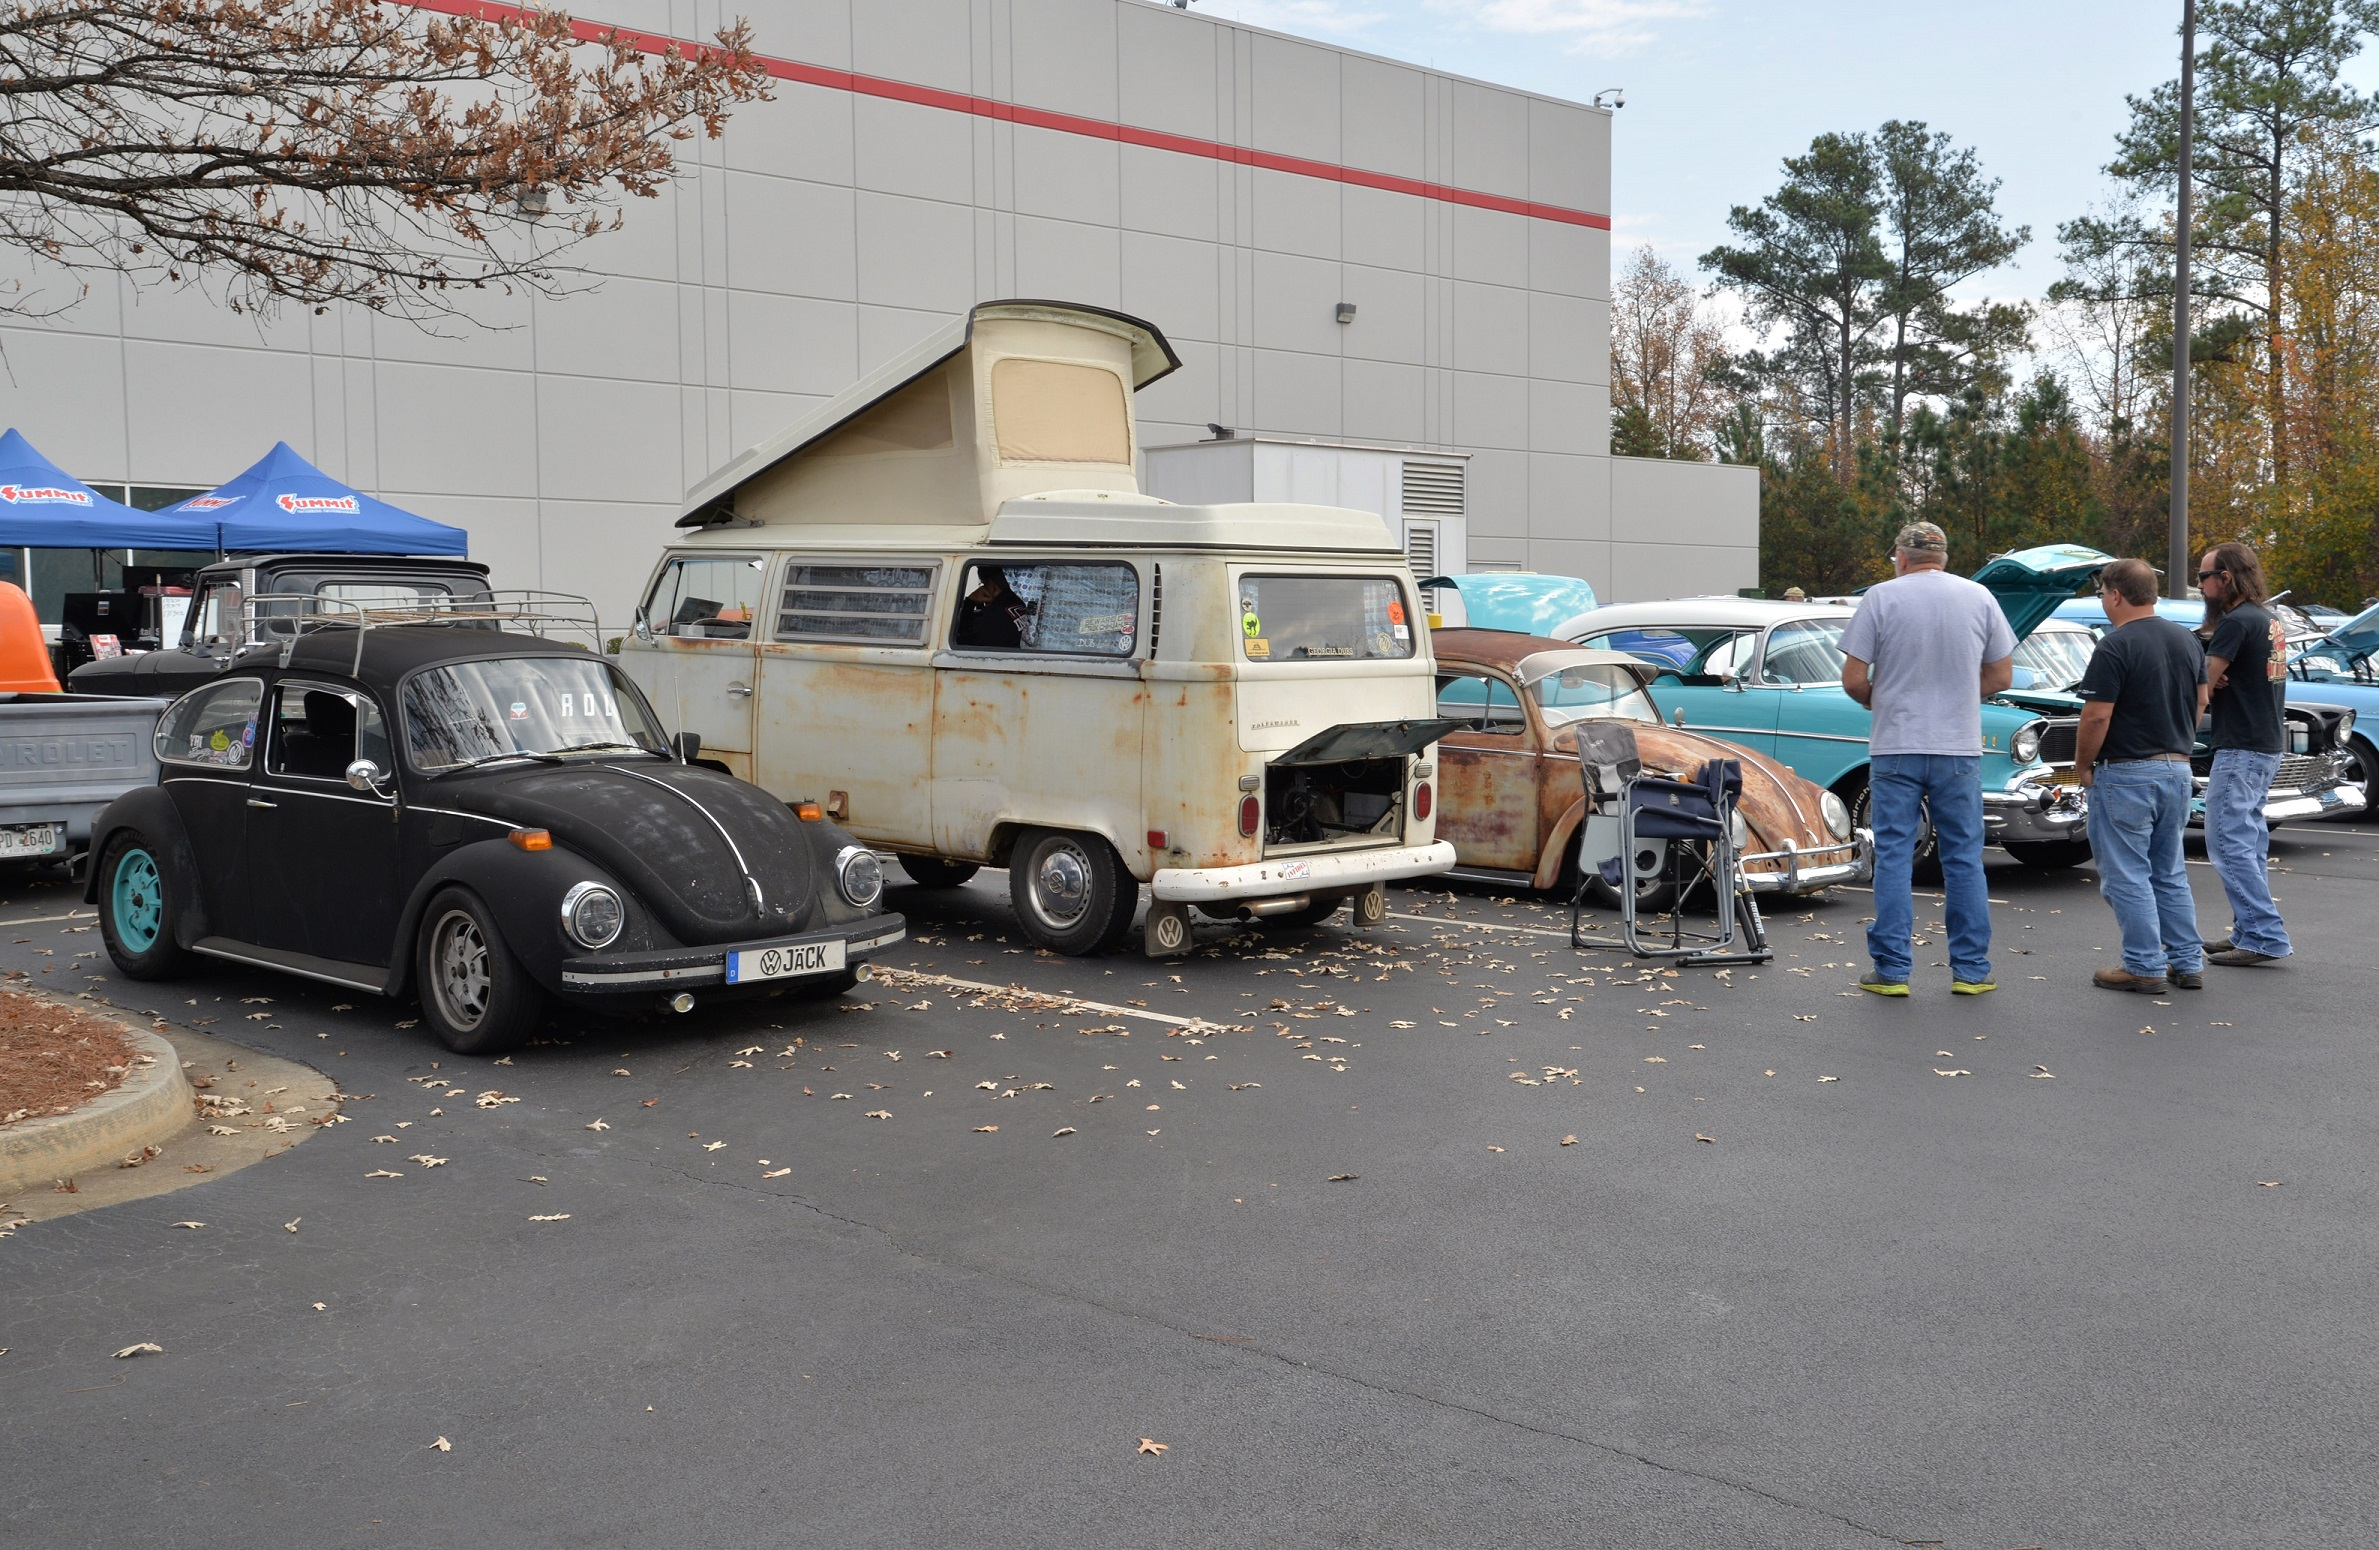 Toys for Tots Cruise In Volkswagens